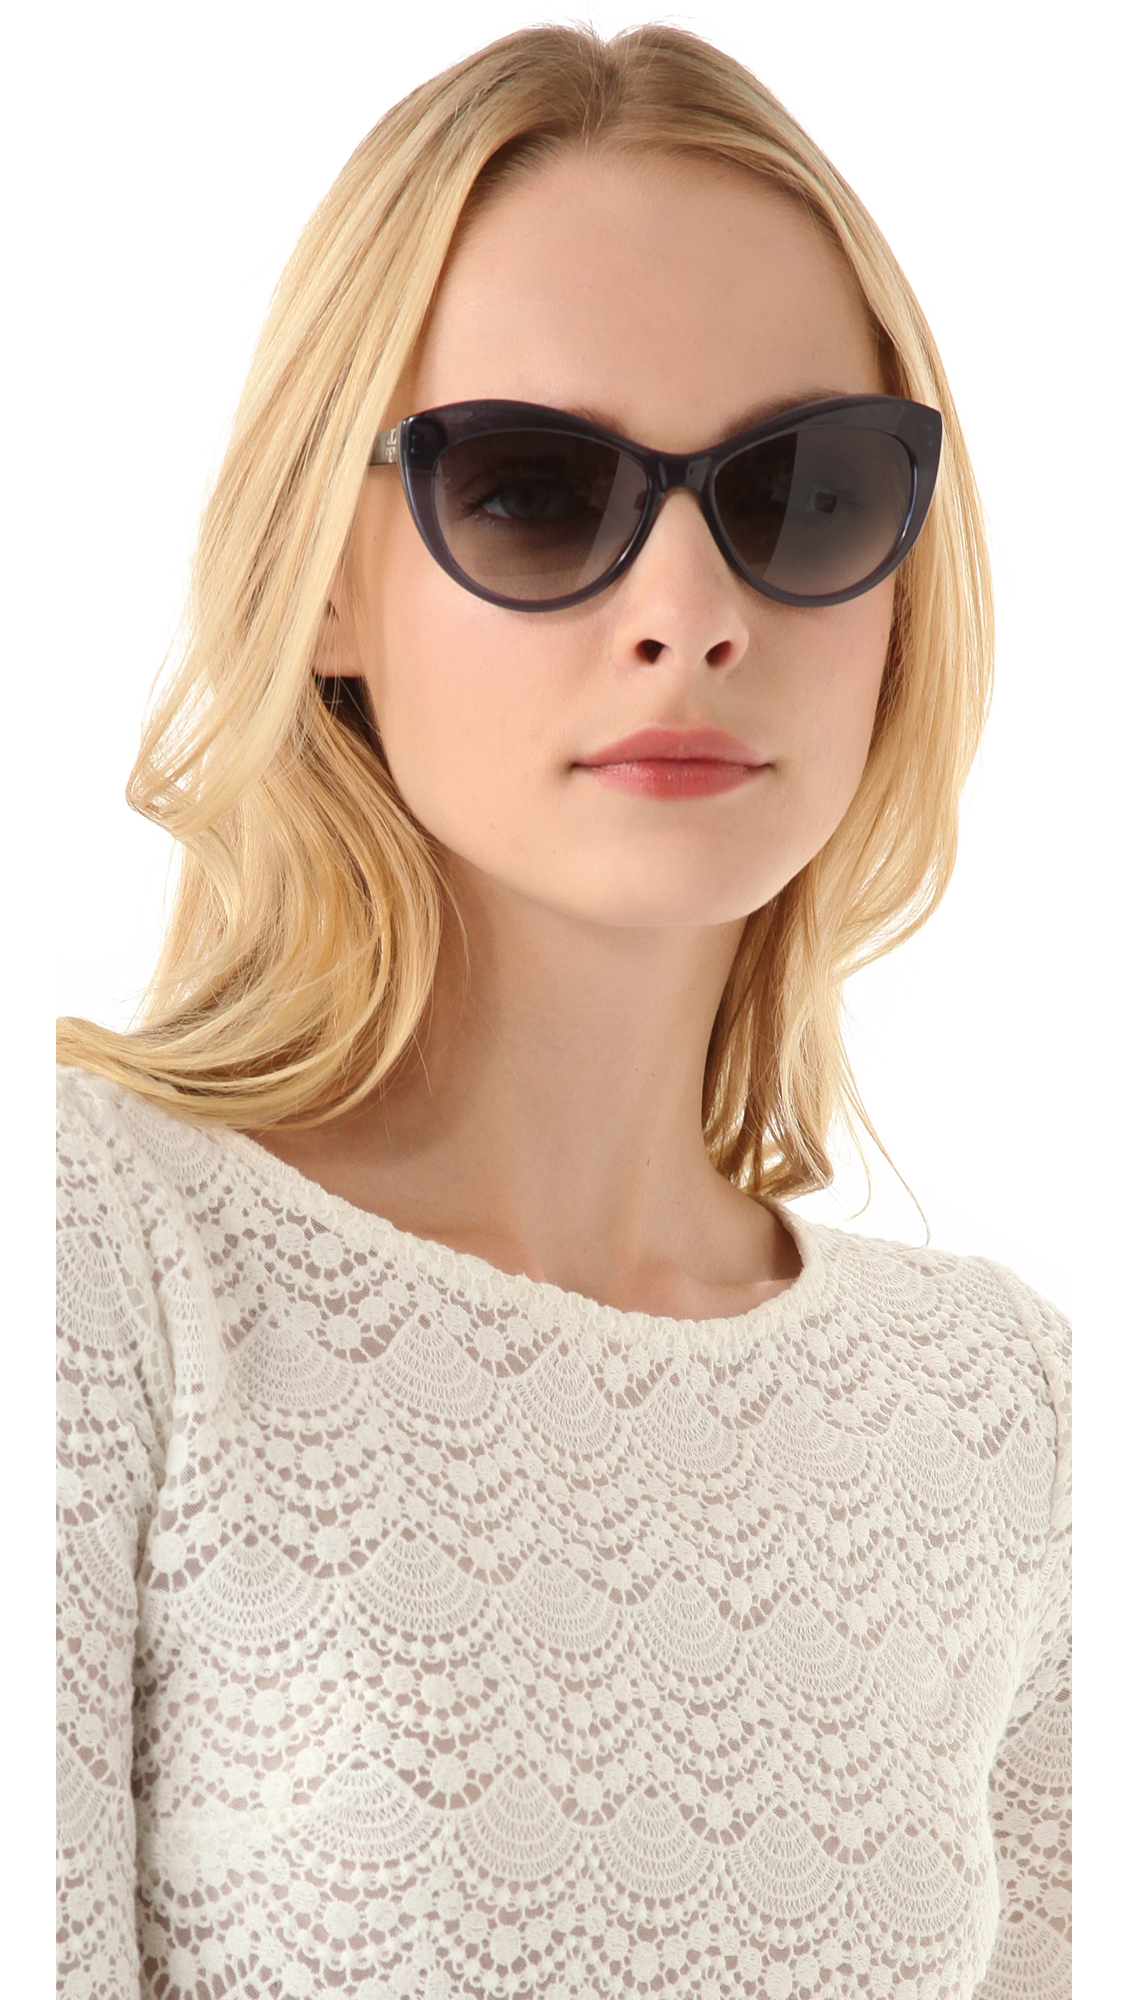 Lyst Tory Burch Oversized Cat Eye Sunglasses In Blue